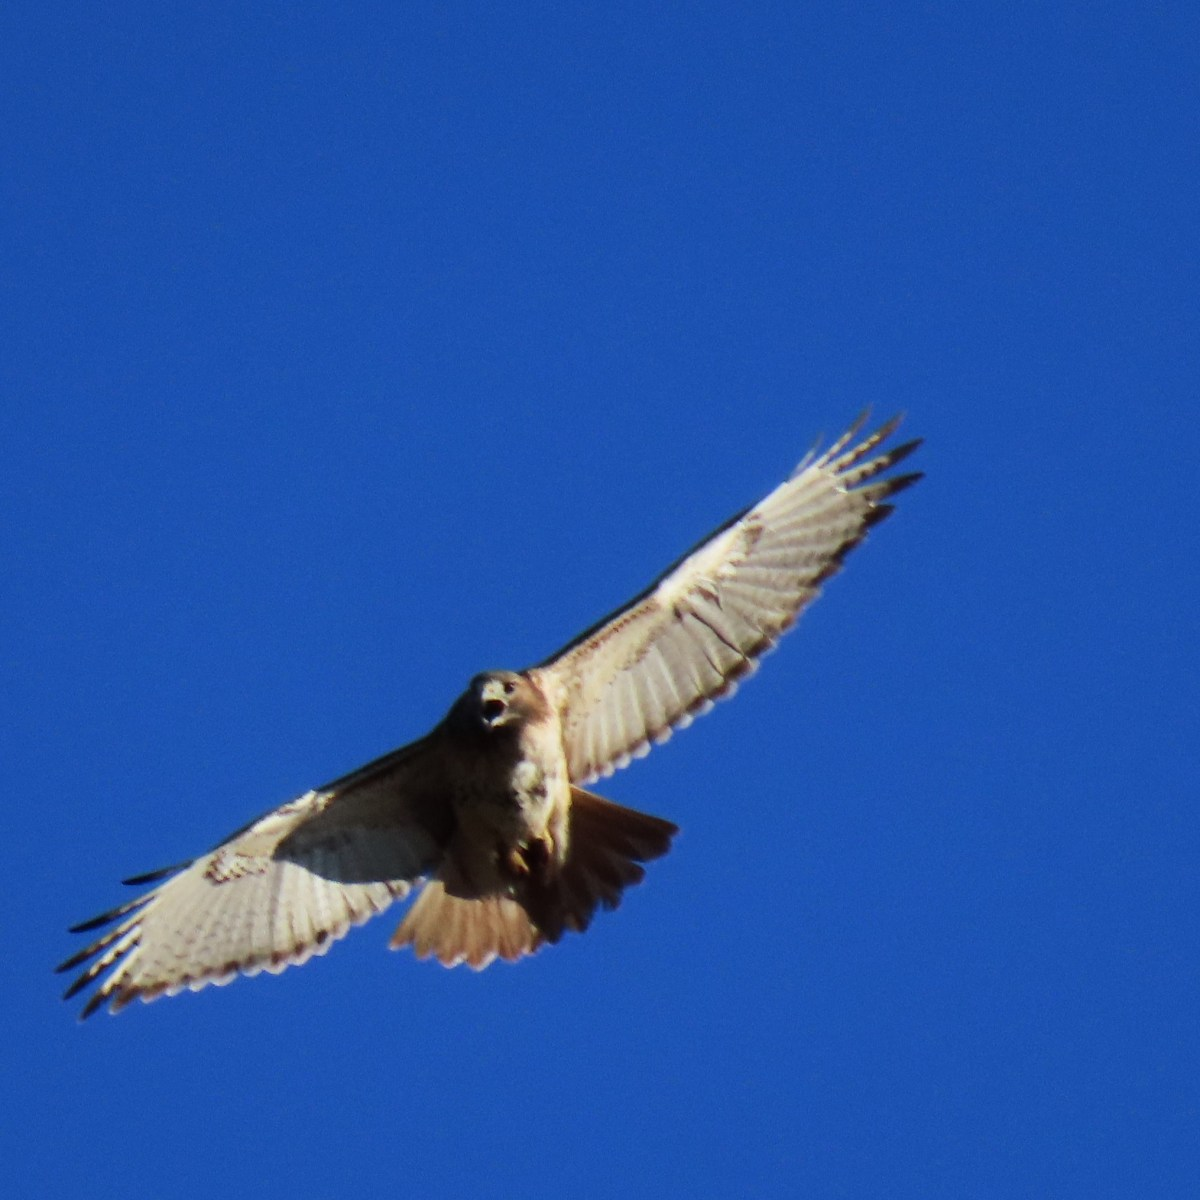 A red-tailed hawk soars in the bright-blue sky